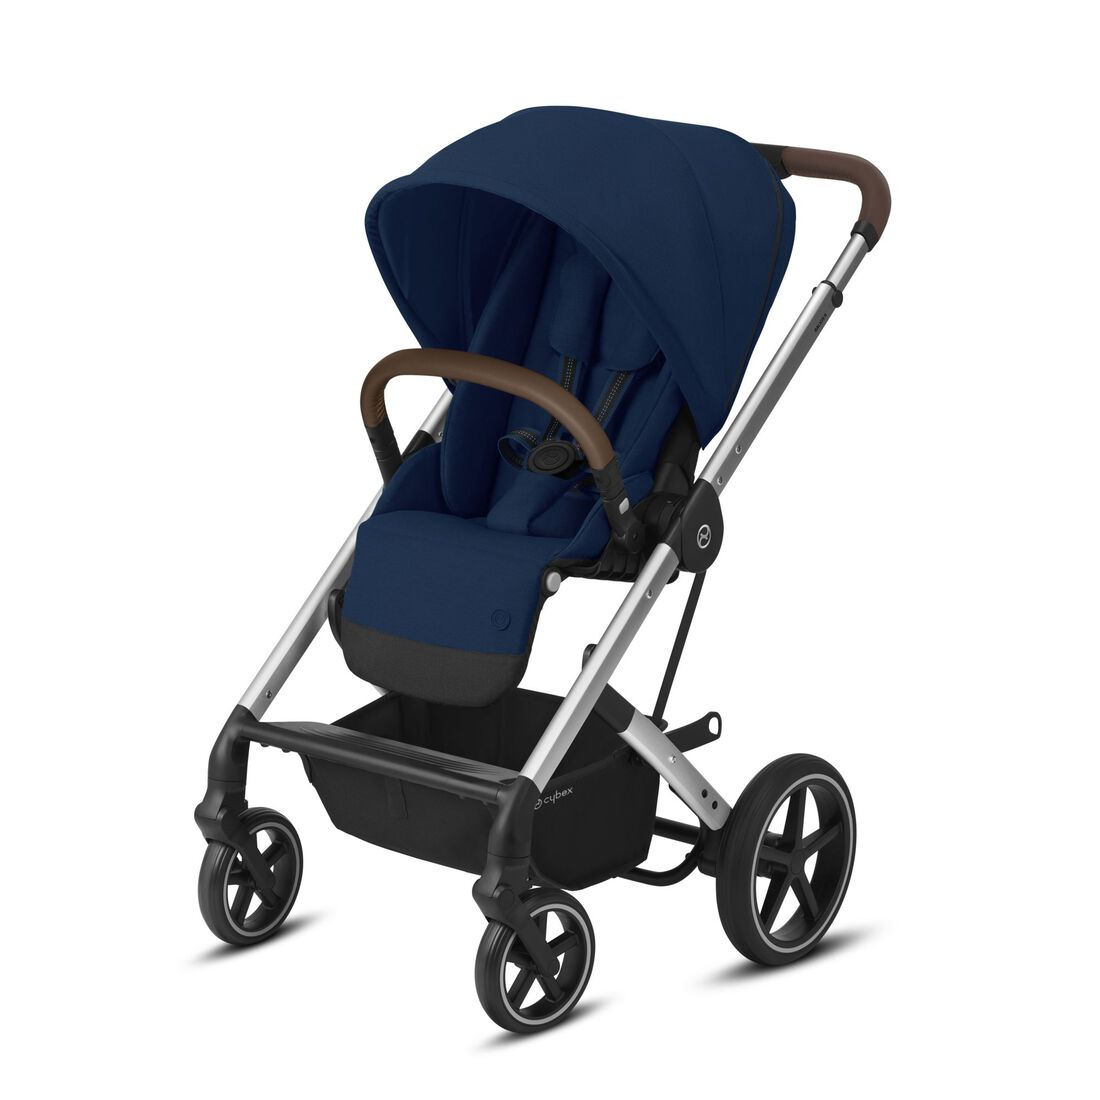 CYBEX Balios S Lux - Navy Blue (Silver Frame) in Navy Blue (Silver Frame) large